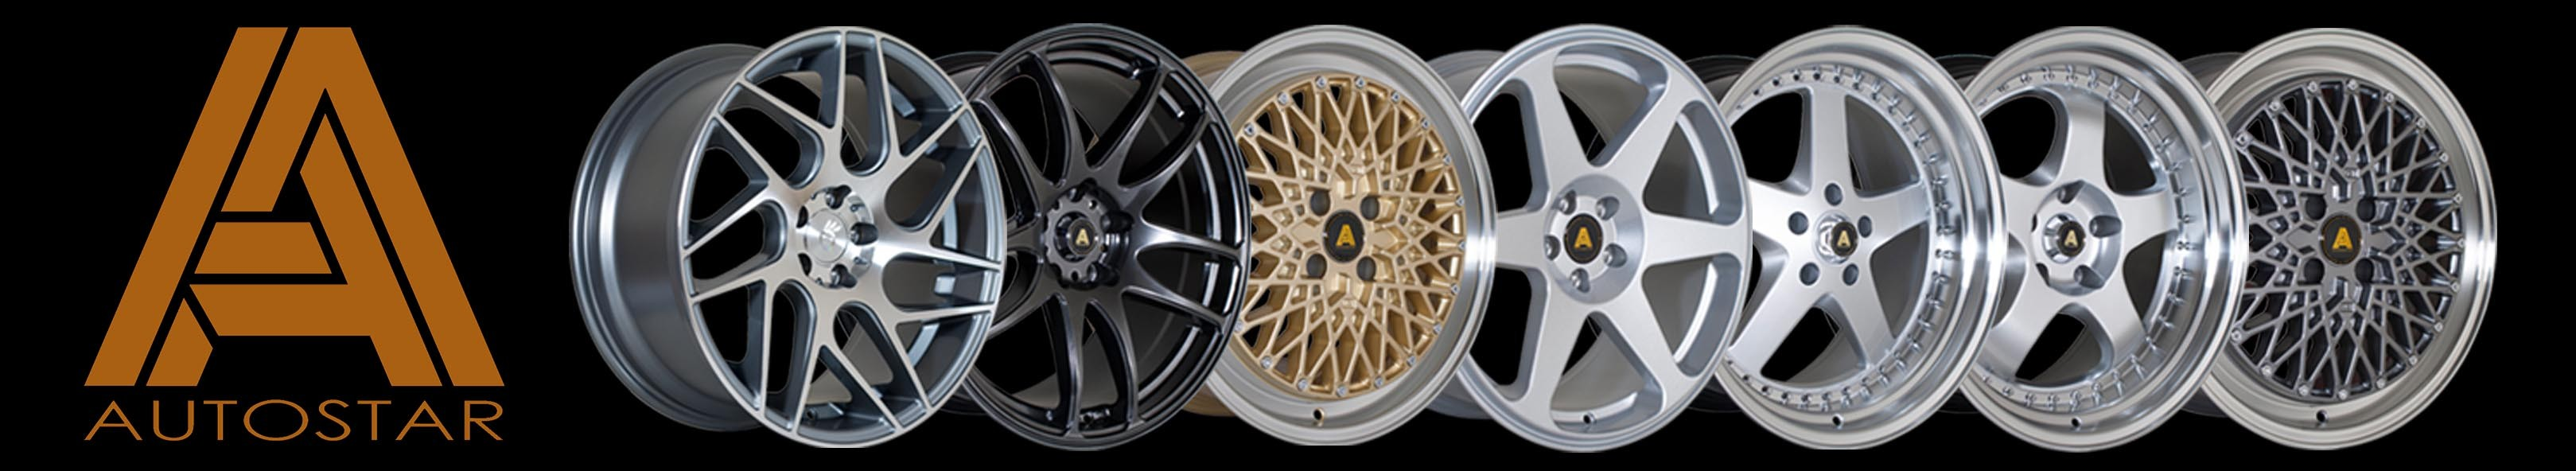 Autostar-Wheels